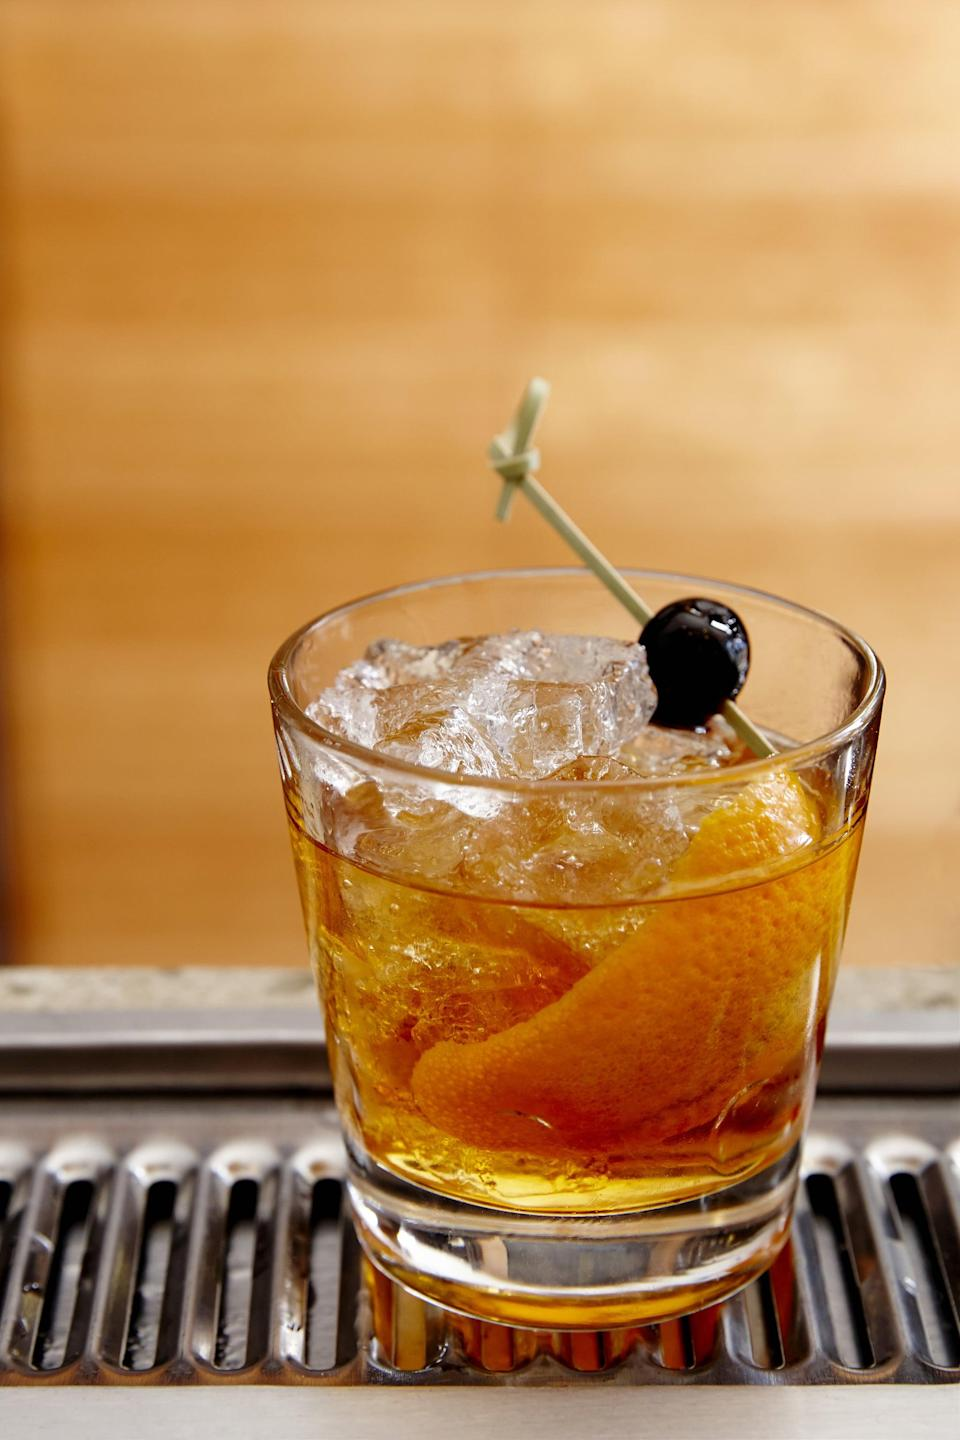 """<p>Washington locals are craving bourbon whiskey with a little sugar and a dash of bitters stirred up with quality ice and garnished with an orange peel, and we have no choice but to stan. Old fashioned cocktails are seriously good, so we know they're doing something right.</p> <p><strong>Get the recipe</strong>: <a href=""""https://www.popsugar.com/buy?url=https%3A%2F%2Fwww.bonappetit.com%2Frecipe%2Fbest-old-fashioned&p_name=old%20fashioned&retailer=bonappetit.com&evar1=yum%3Aus&evar9=47471653&evar98=https%3A%2F%2Fwww.popsugar.com%2Ffood%2Fphoto-gallery%2F47471653%2Fimage%2F47475208%2FWashington-Old-Fashioned&list1=cocktails%2Cdrinks%2Calcohol%2Crecipes&prop13=api&pdata=1"""" class=""""link rapid-noclick-resp"""" rel=""""nofollow noopener"""" target=""""_blank"""" data-ylk=""""slk:old fashioned"""">old fashioned</a></p>"""